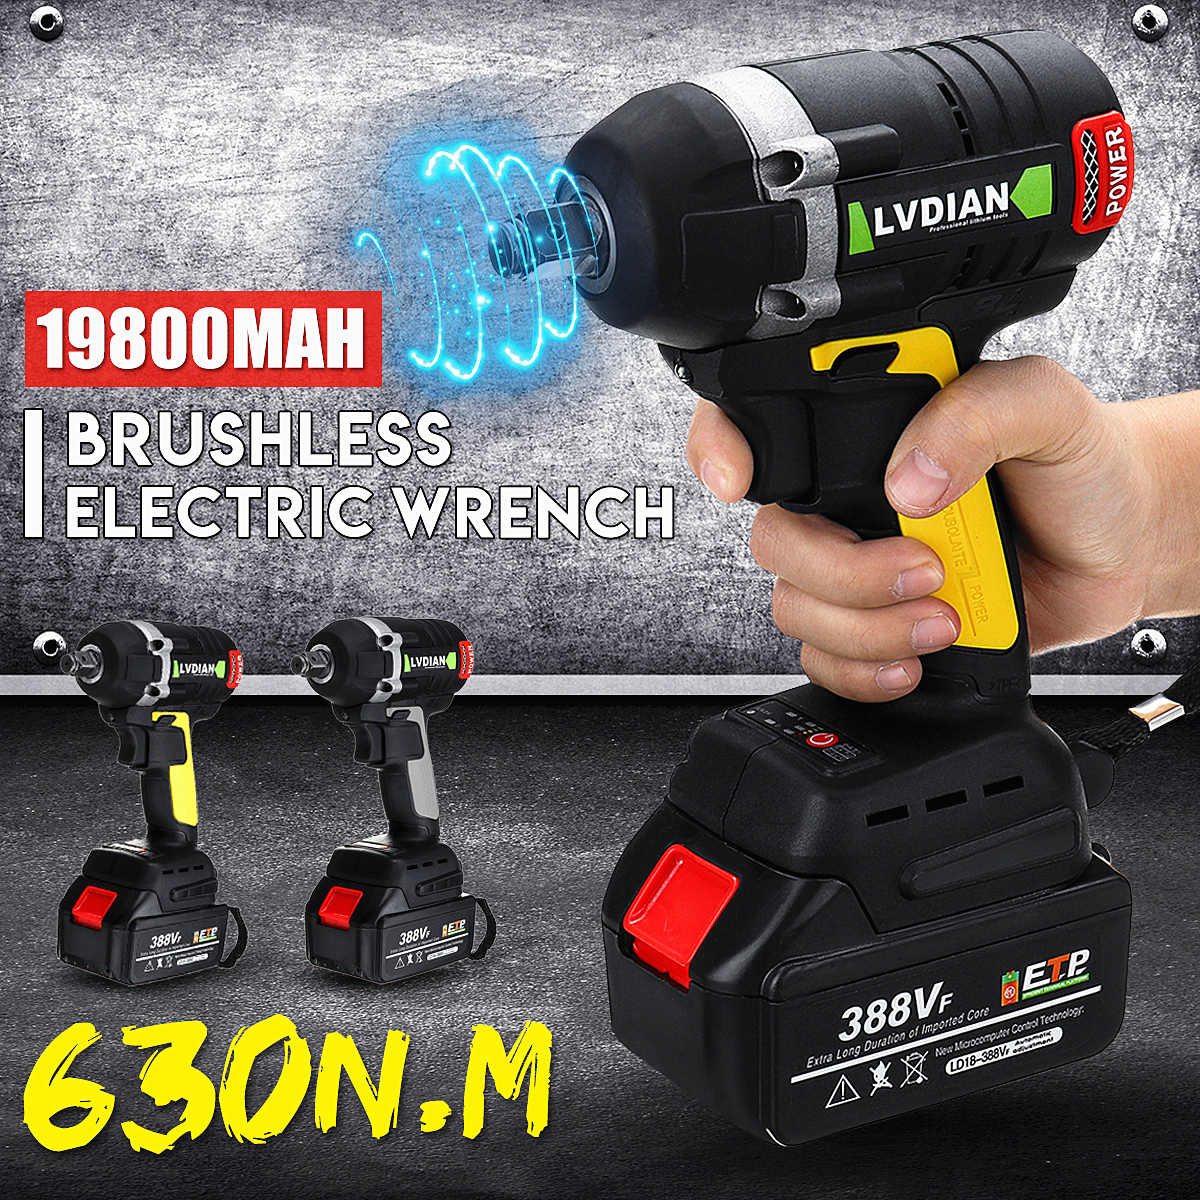 388VF 630N.m Cordless Electric Brushless Wrench Rechargeable 19800mAh Li Battery Torque Guns LED light Socket Wrench Power Tools